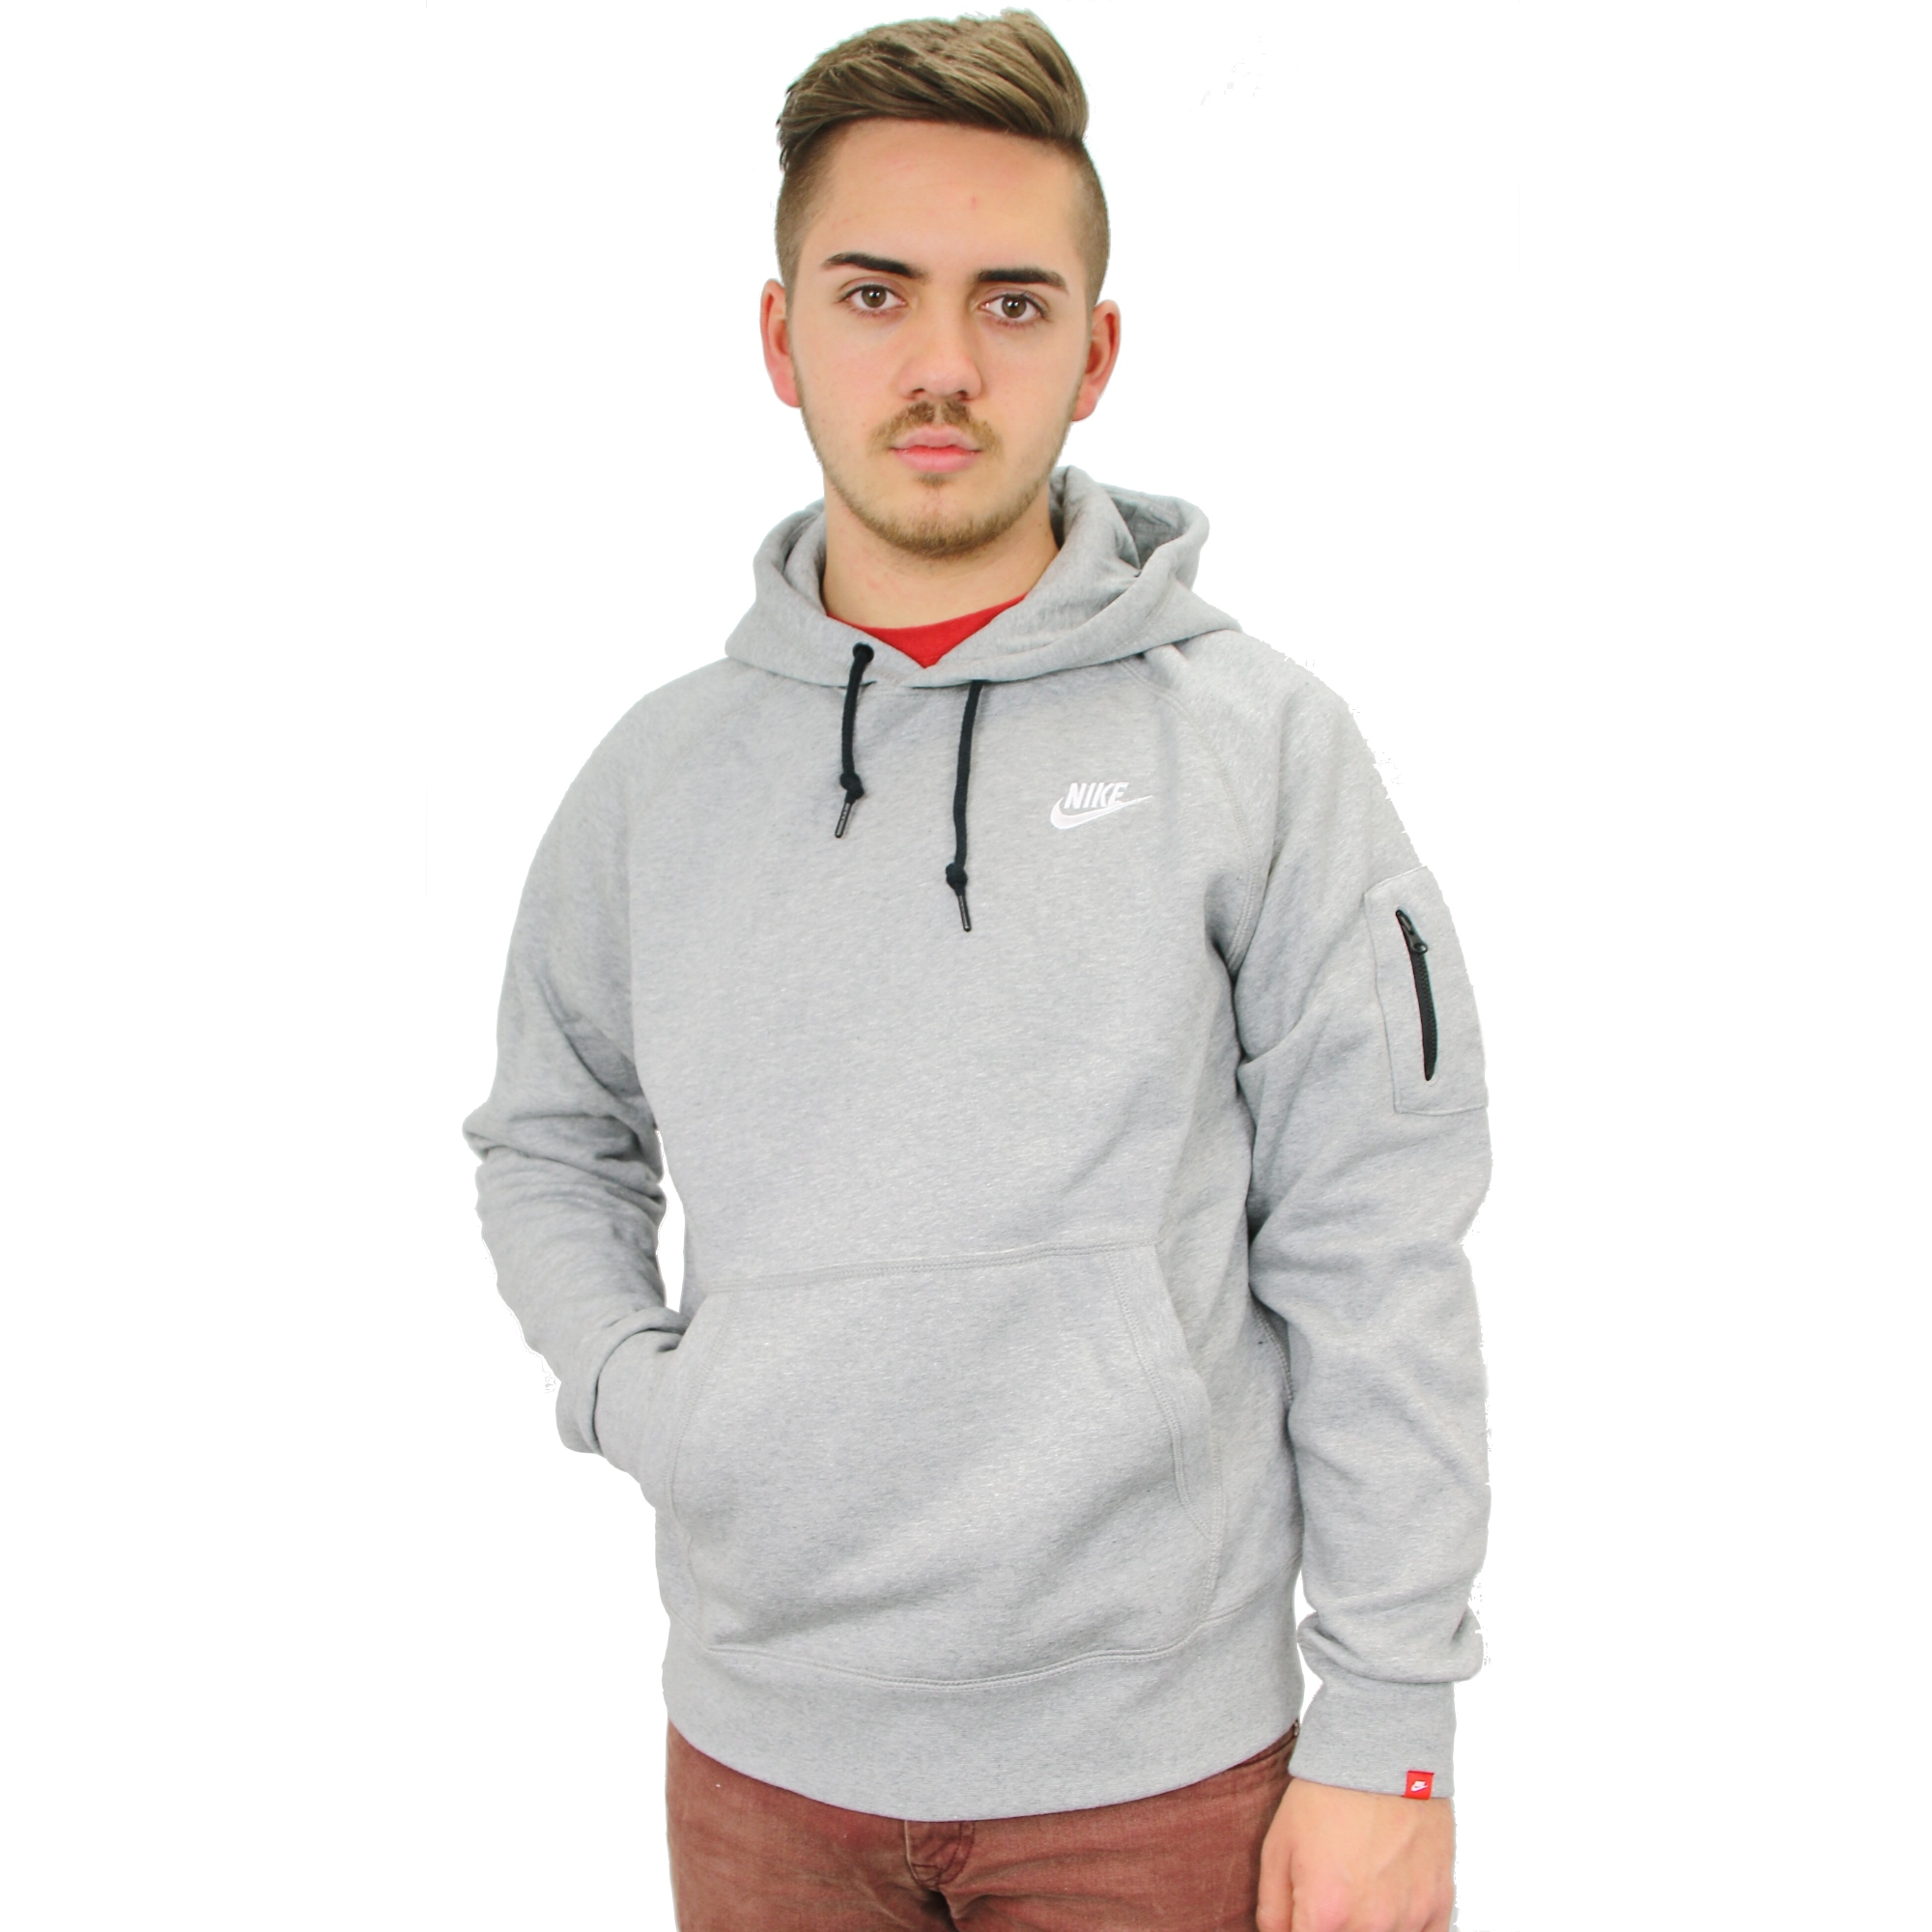 nike aw77 fleece hoody men sweater hoodie sweater ebay. Black Bedroom Furniture Sets. Home Design Ideas